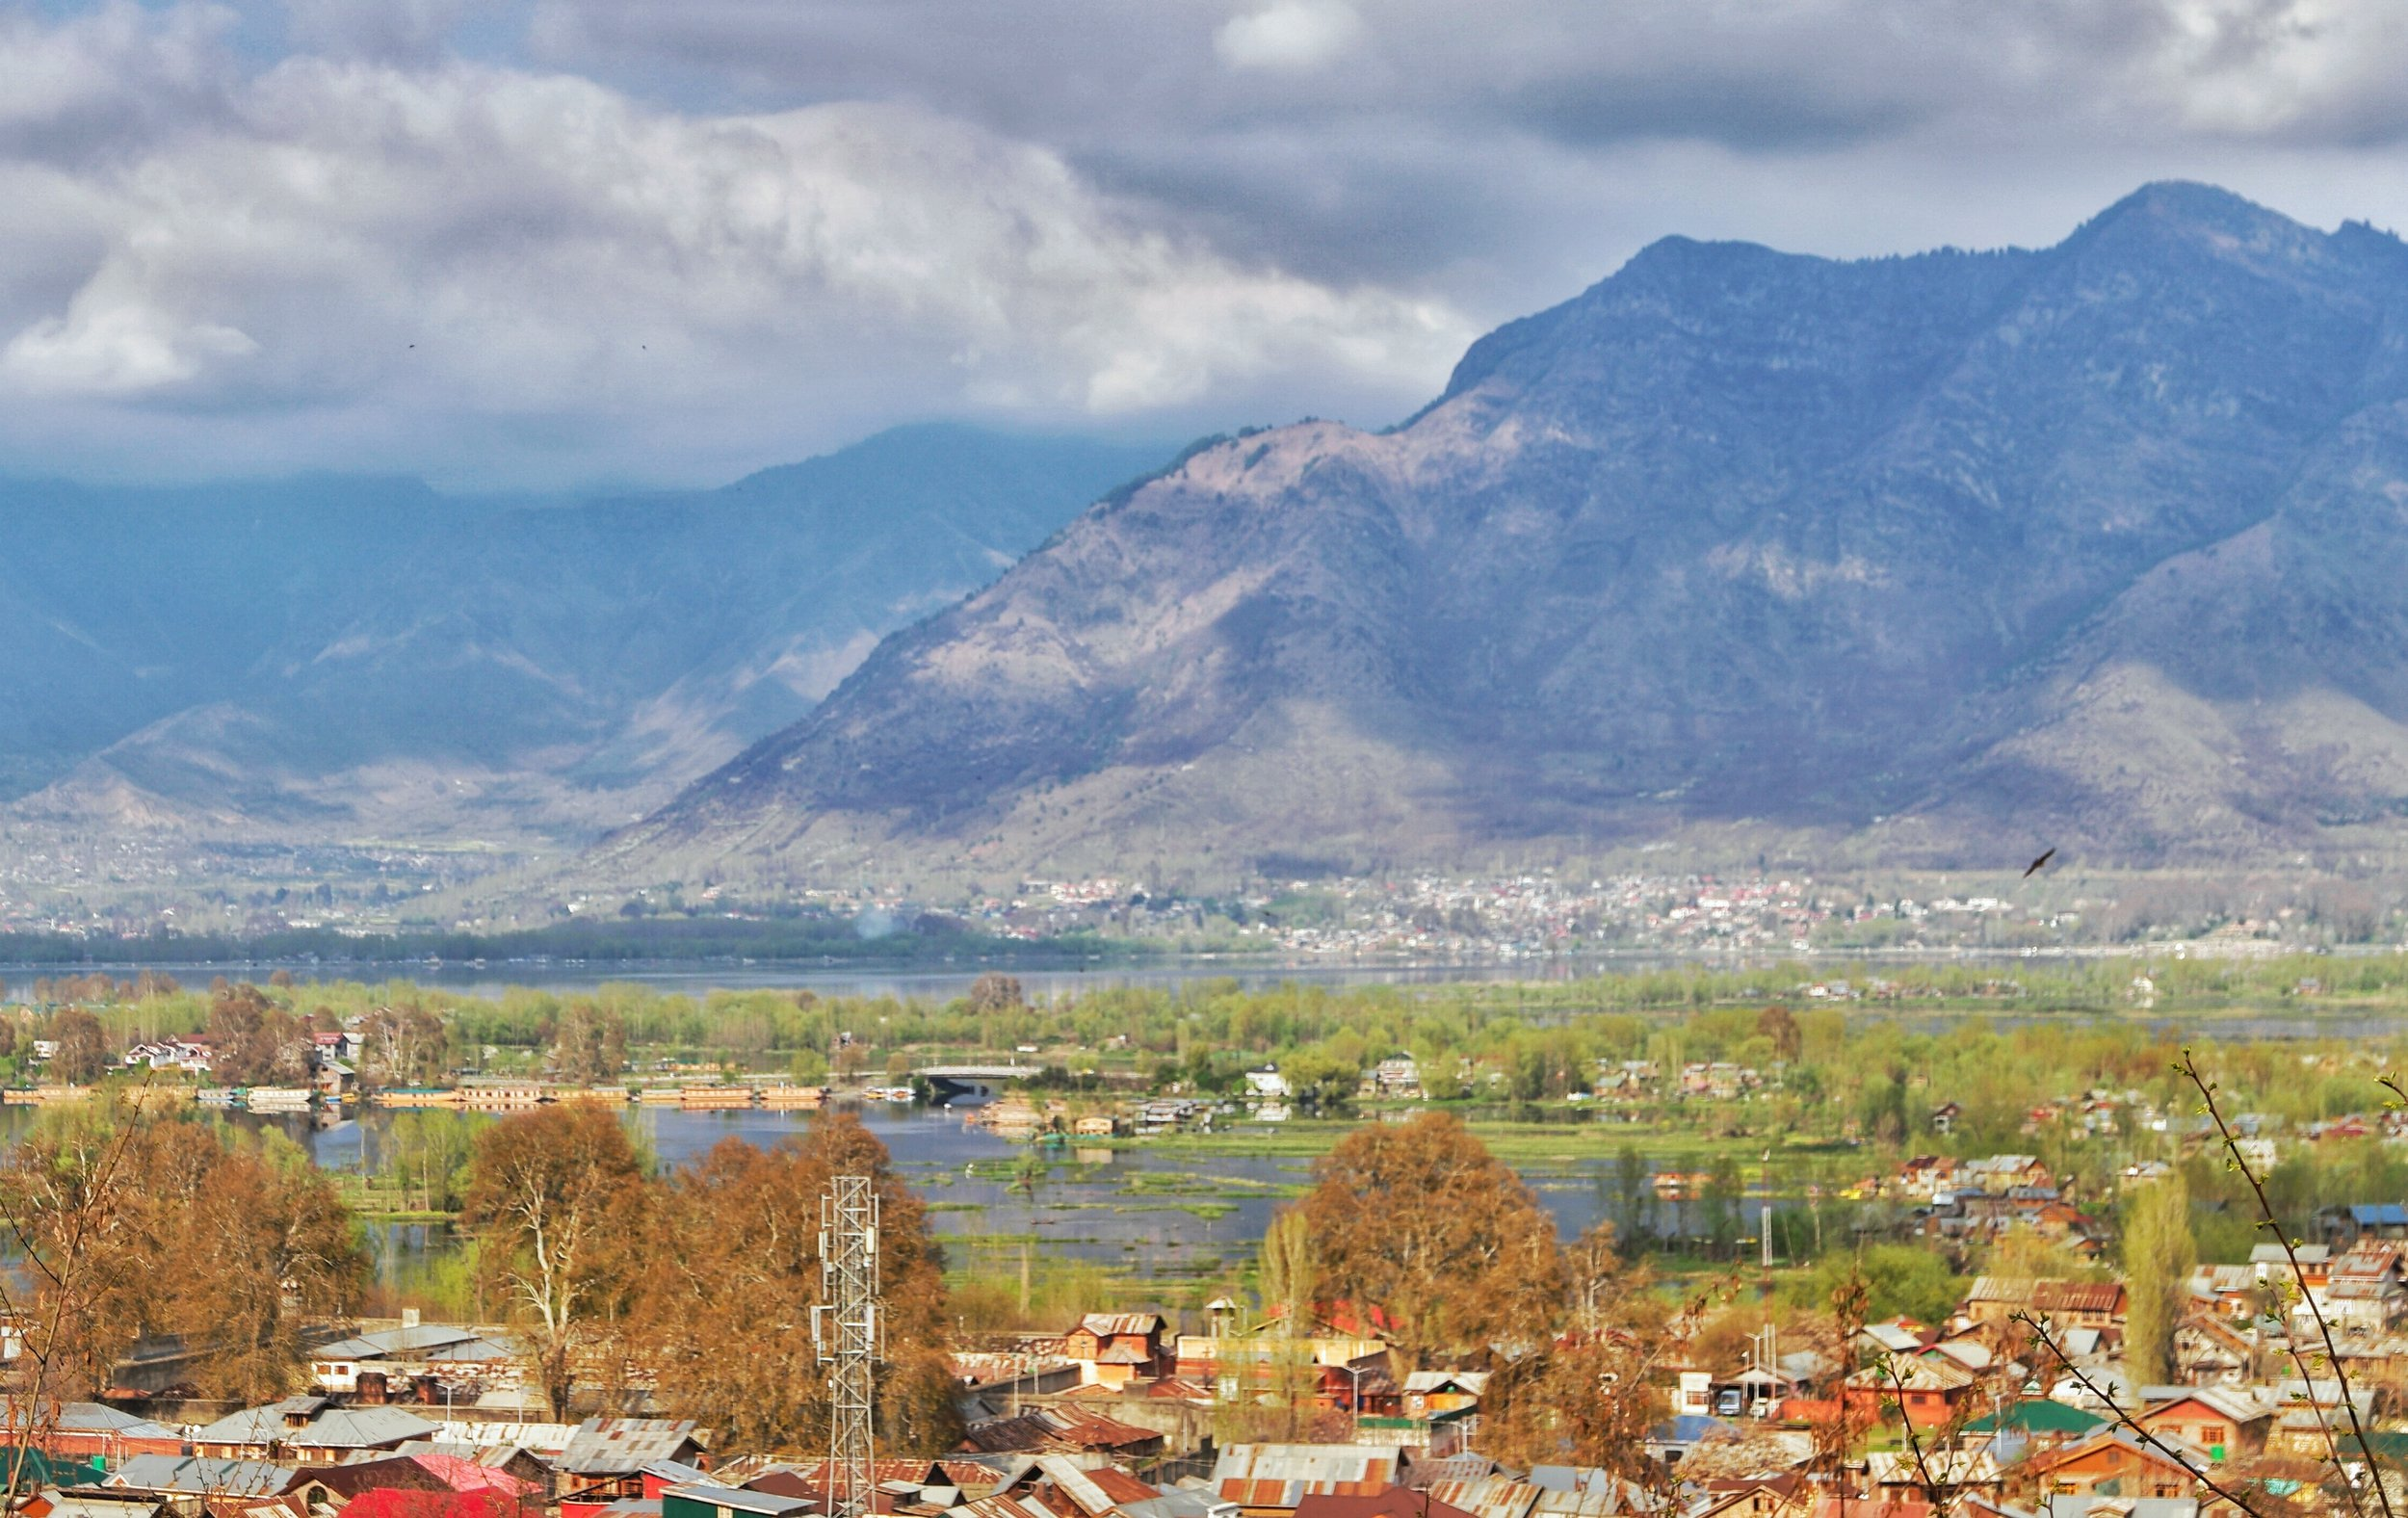 A view of the Nigeen Lake in the foreground and the Dal Lake in the background with the Zabarwan Mountains in the background.